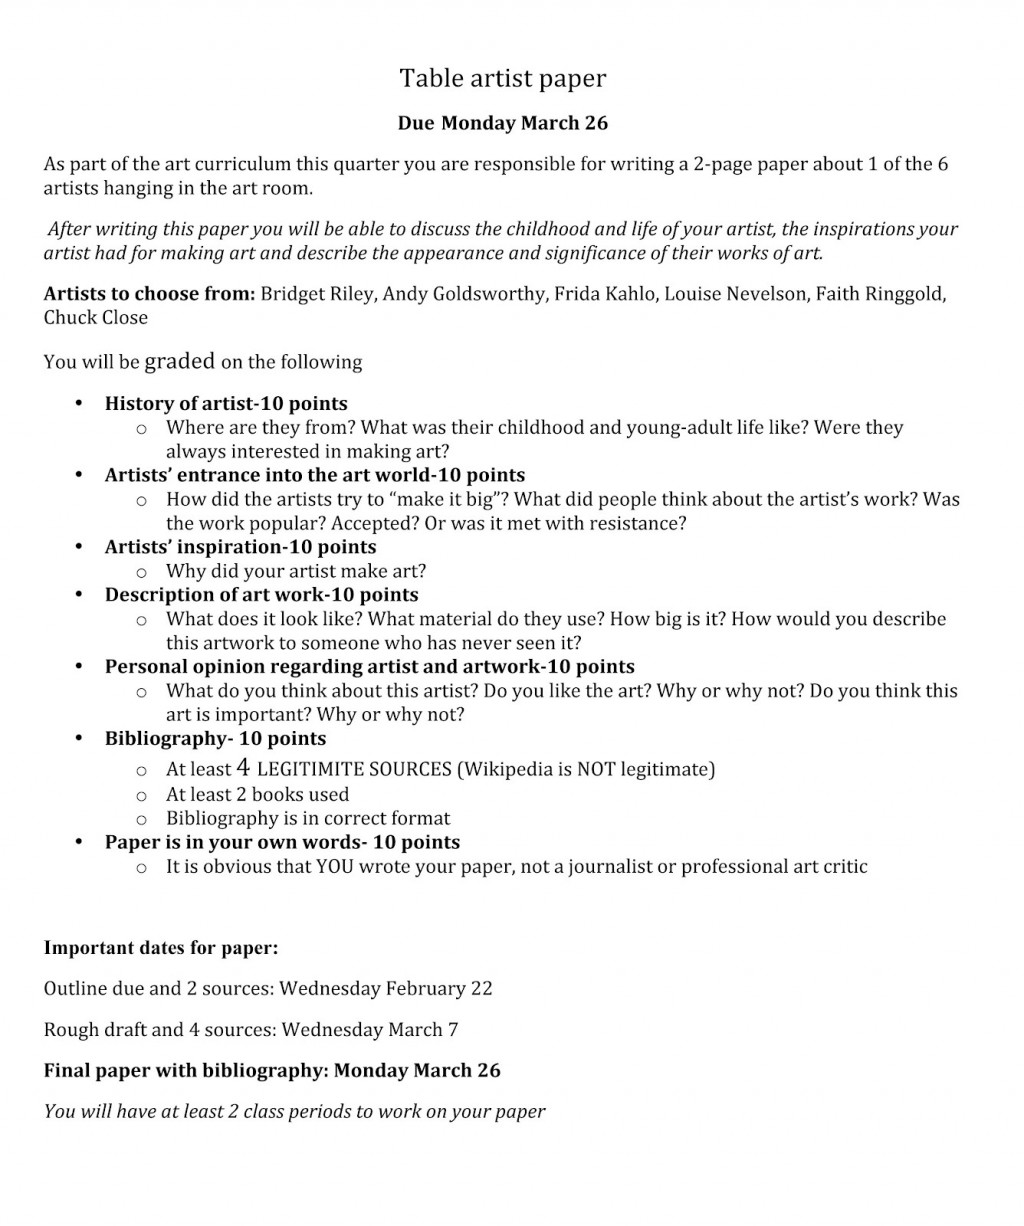 013 Research Paper Tableartistpaper High School History Formidable Rubric Large